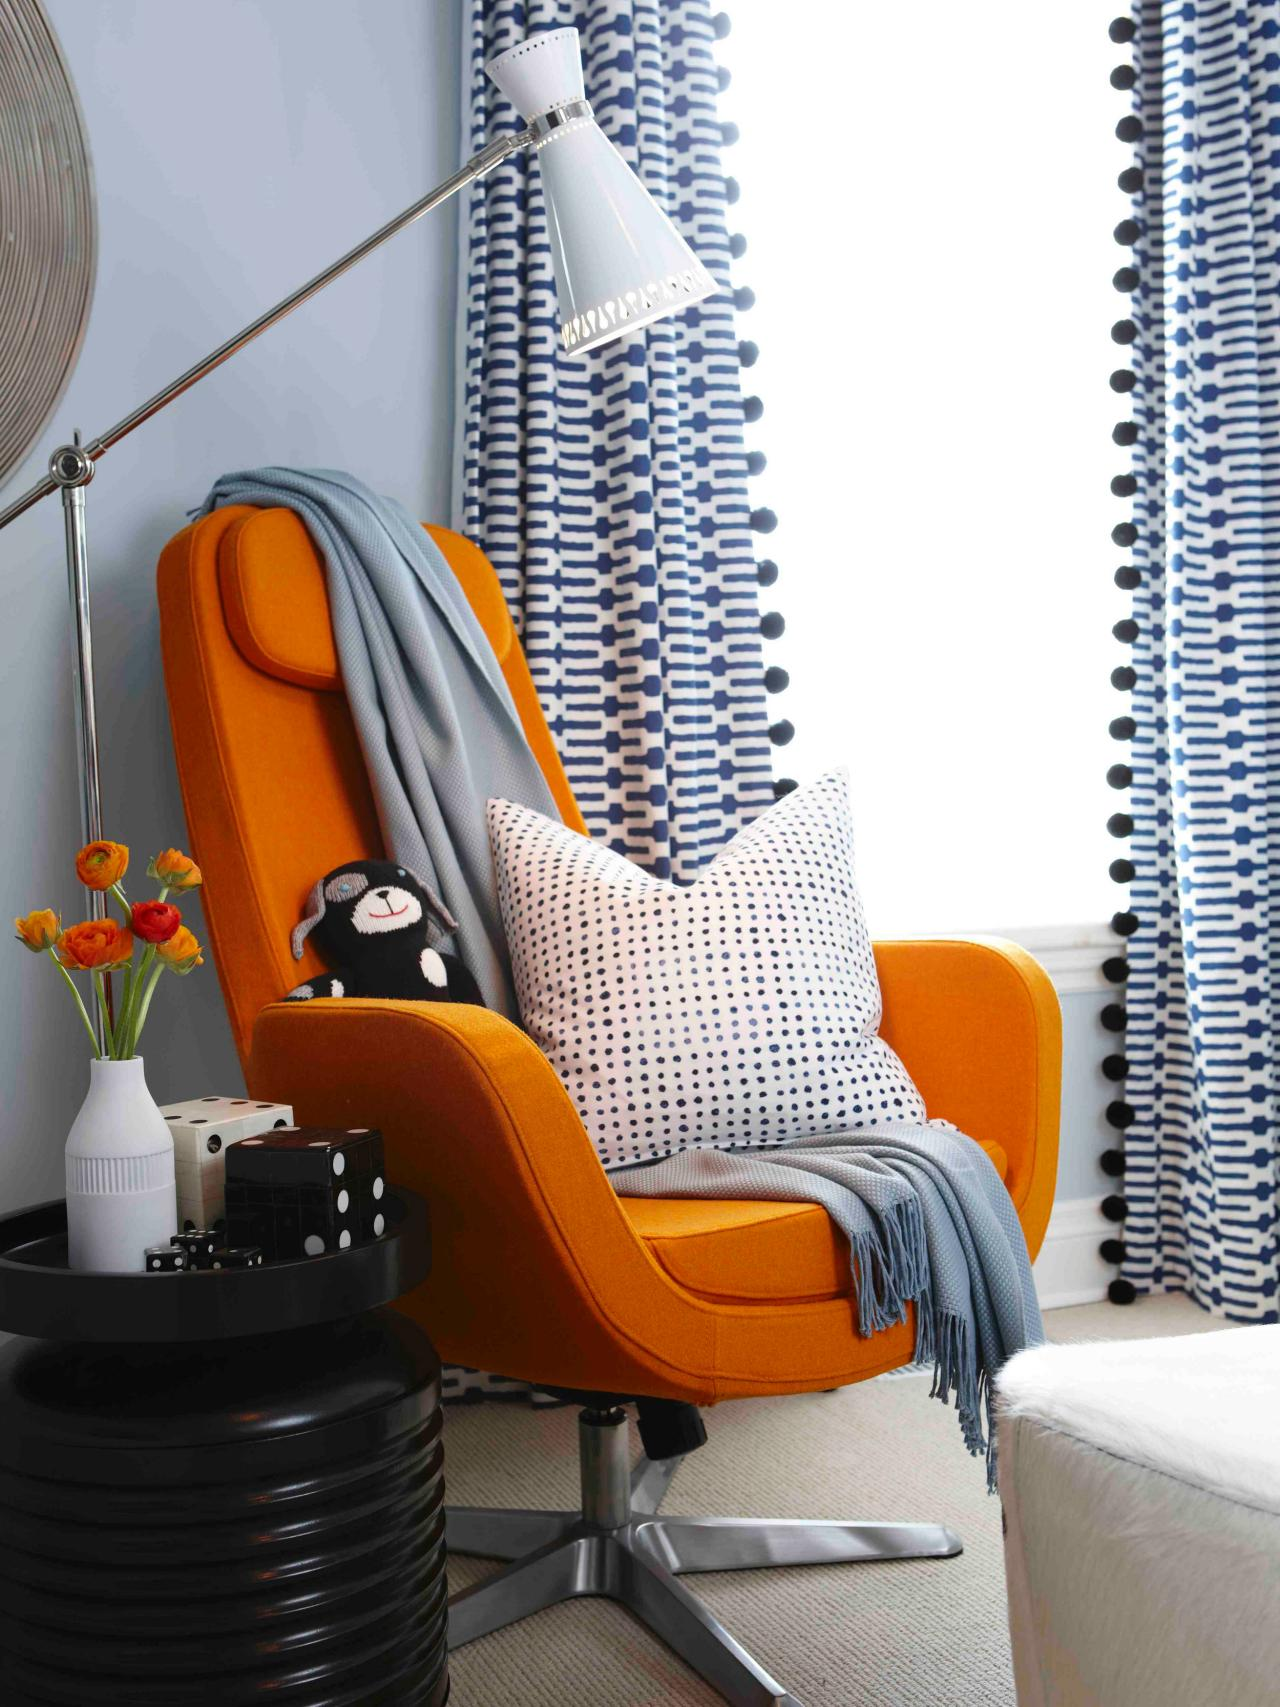 Minimalist reading nook with a vibrant orange chair